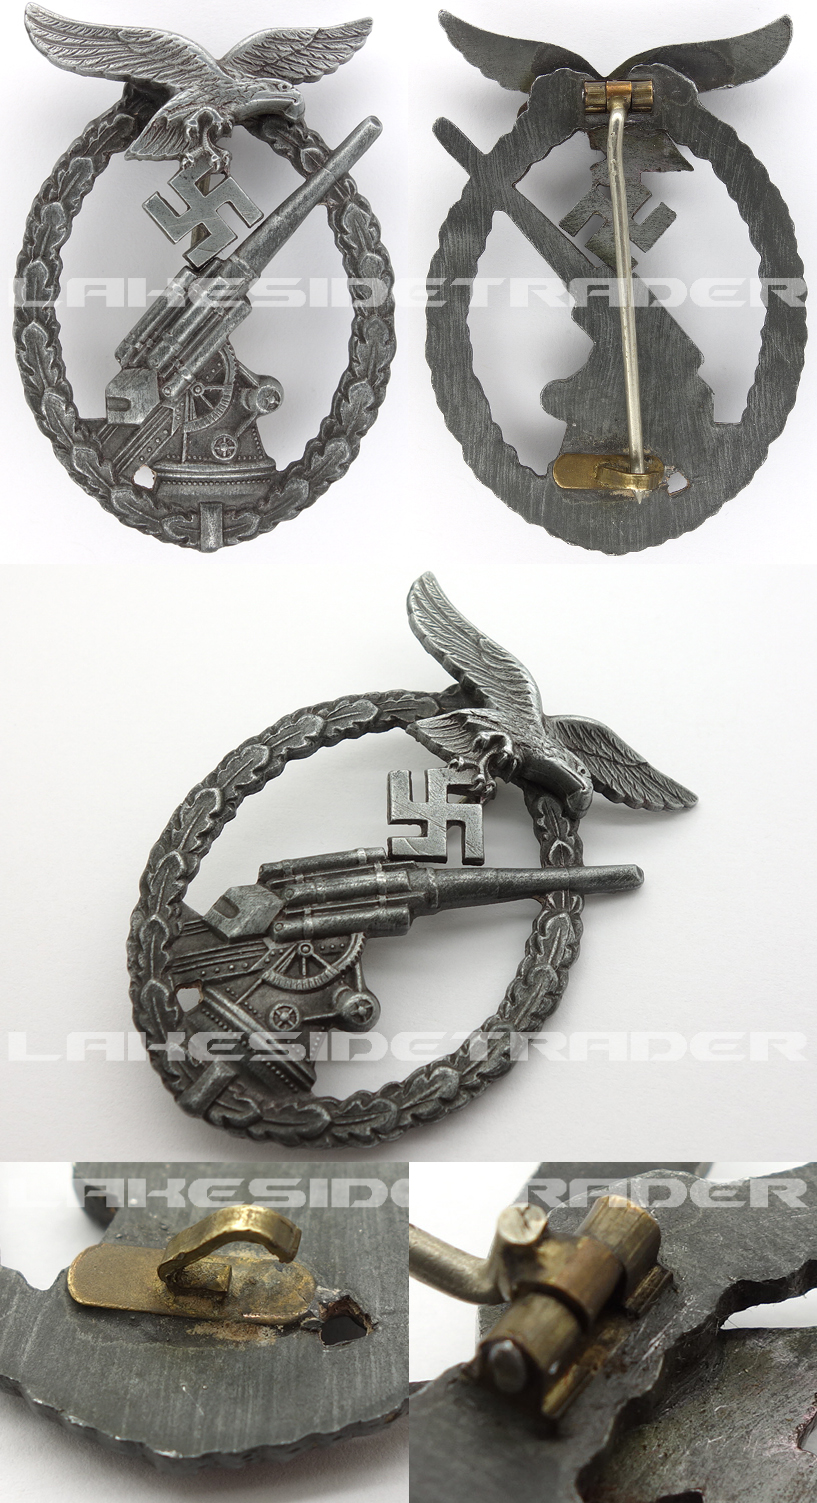 Luftwaffe Flak Badge by Steinhauer & Lück